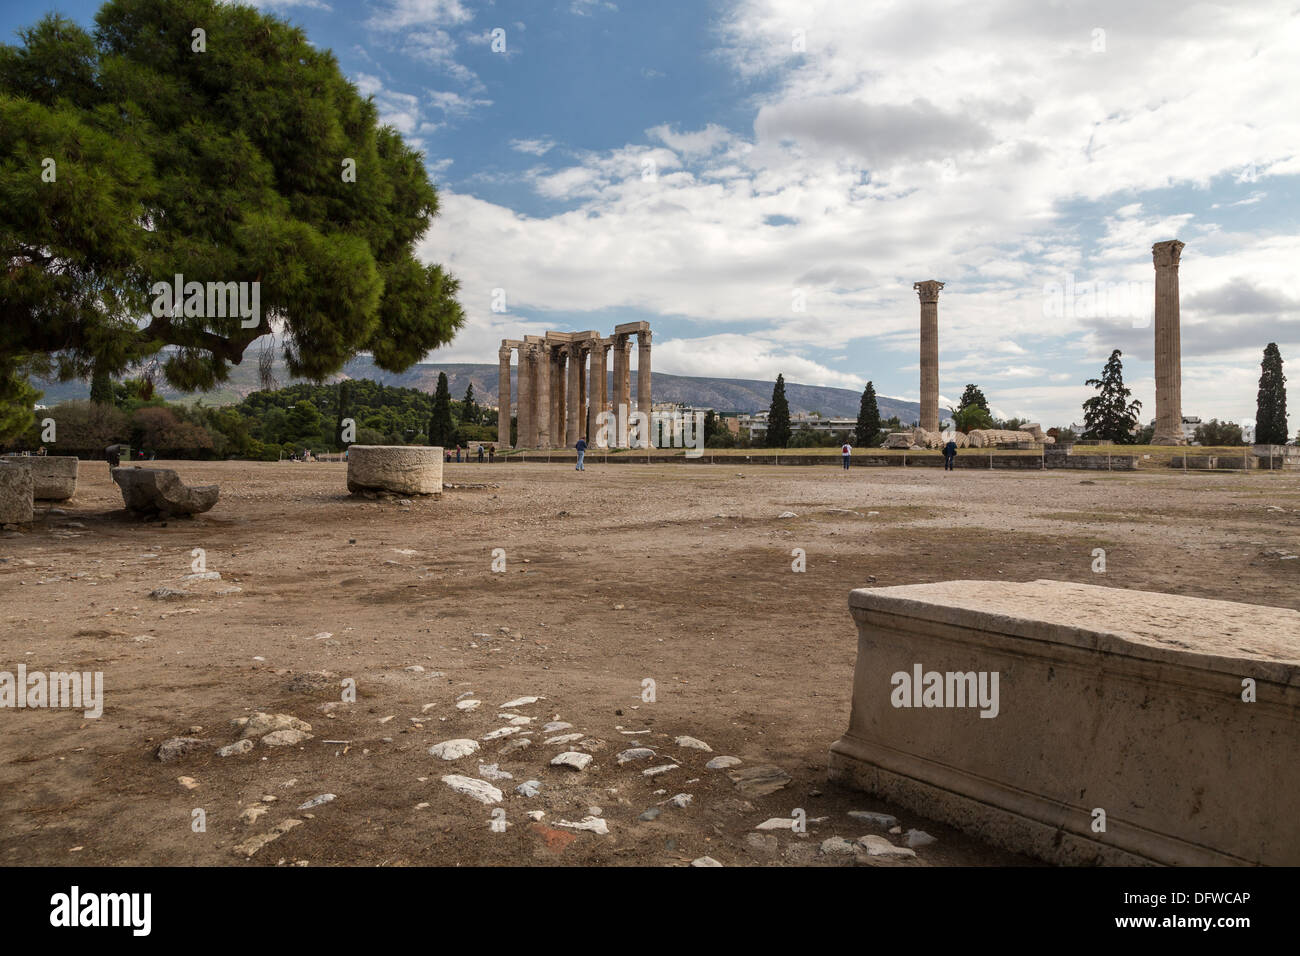 Temple of Olympian Zeus. Athens, Greece on October 4, 2013. - Stock Image